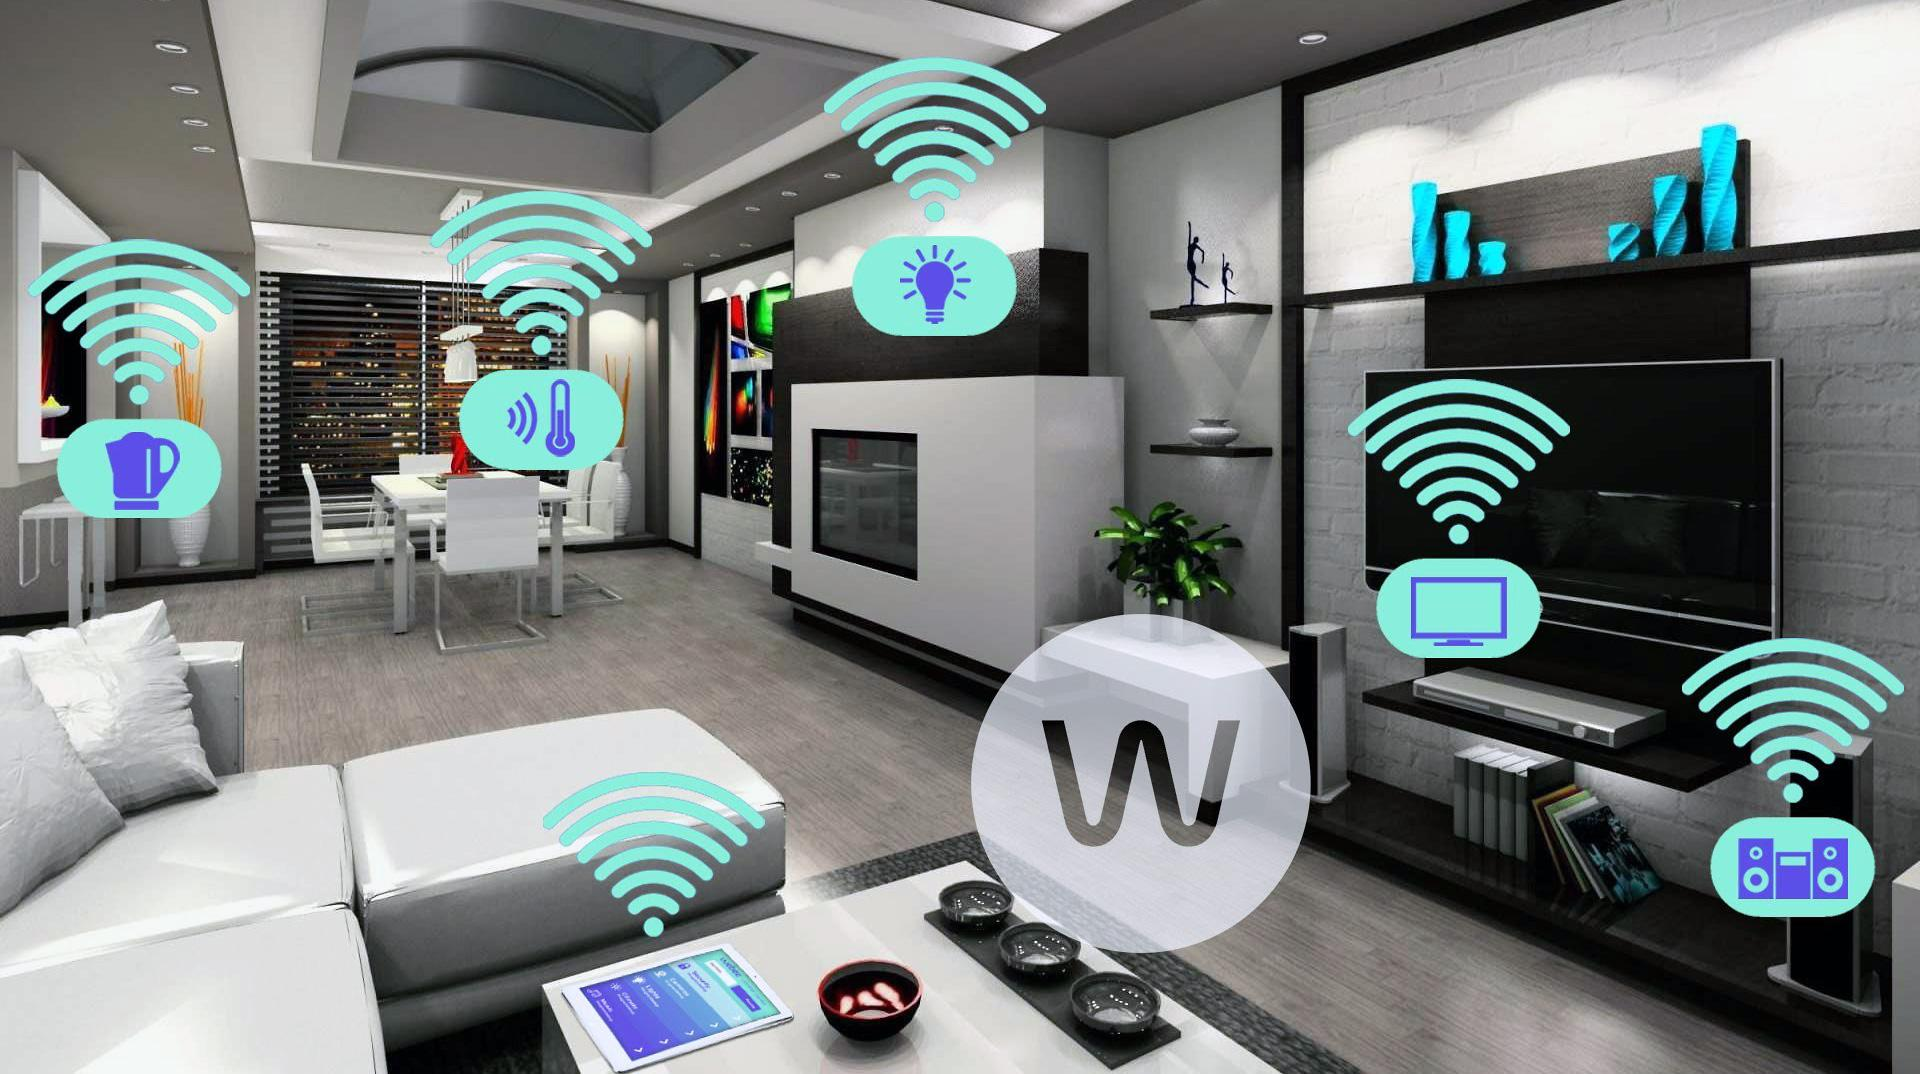 Example of an IoT home.